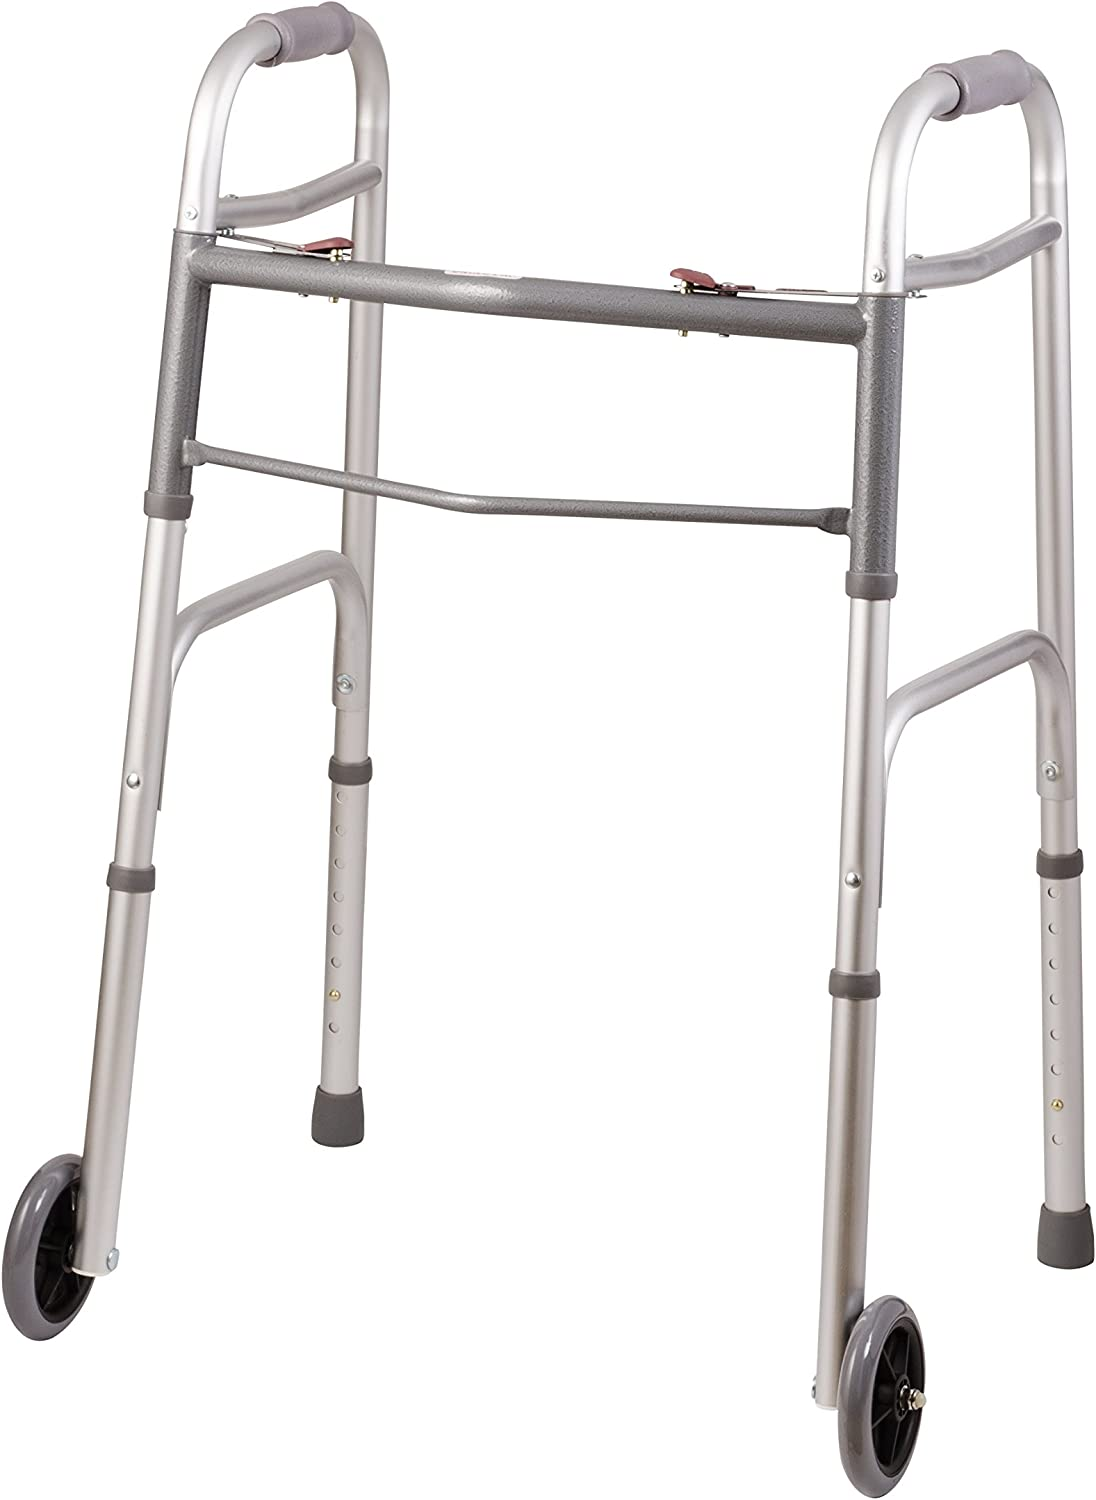 DMI Lightweight Aluminum Folding Walker with Easy Two Button Release, 5 Inch Wheels, Adjustable Height, No Assembly Needed, Silver